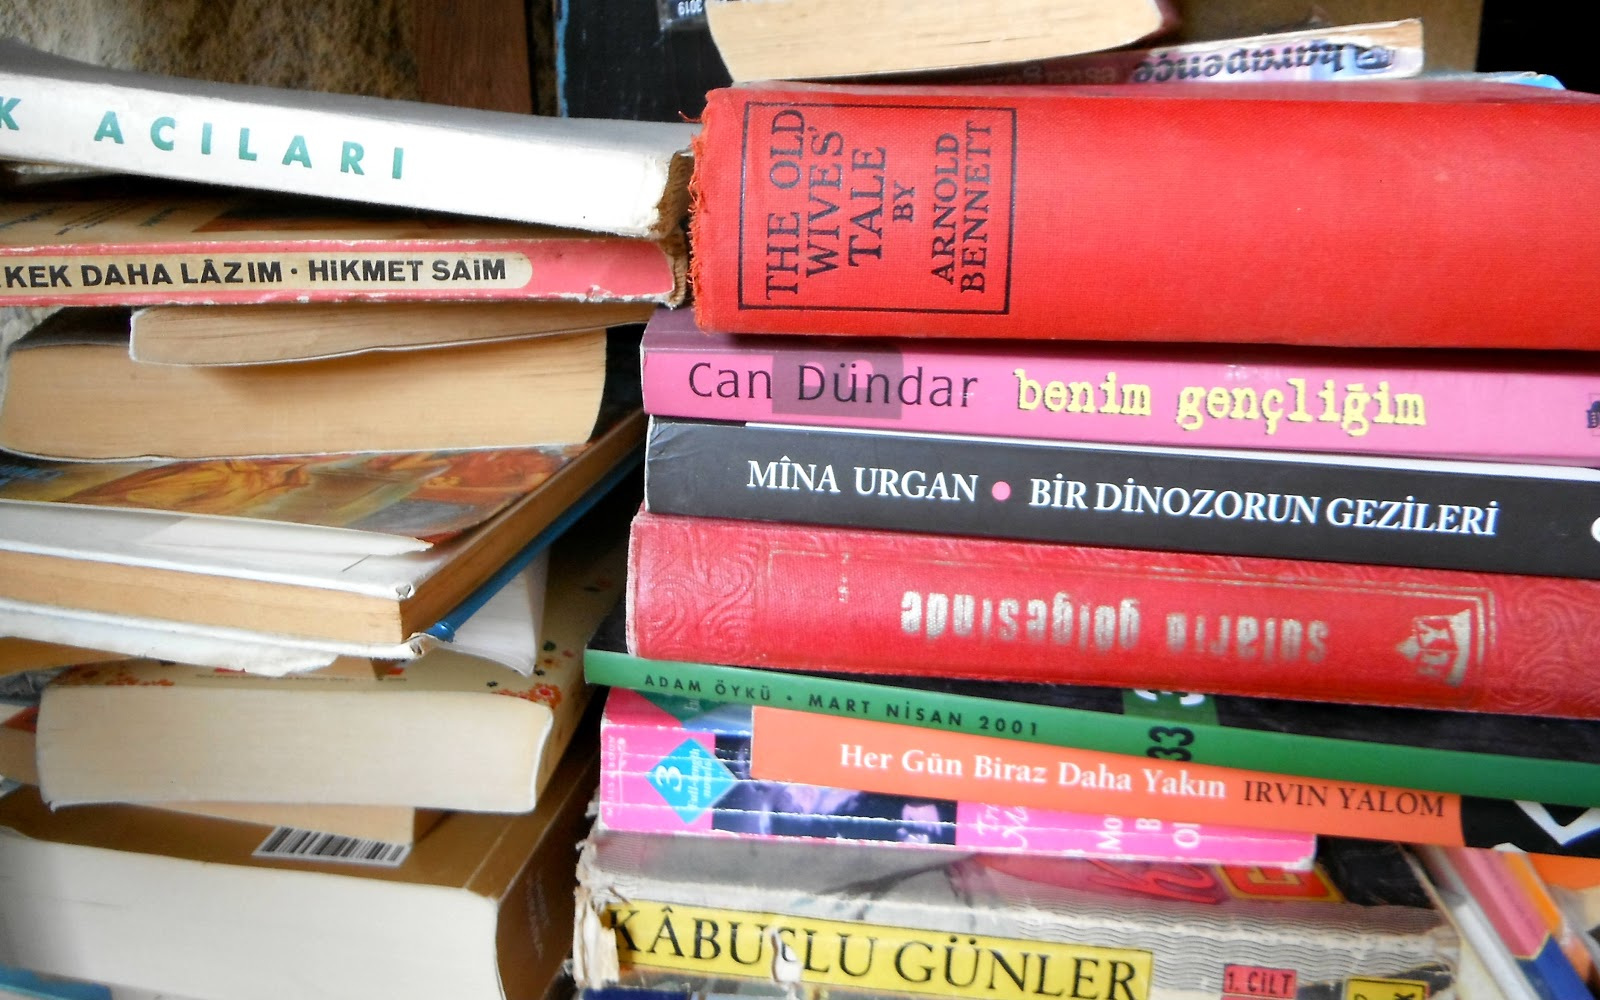 Books in a Turkish Cypriot bookshop